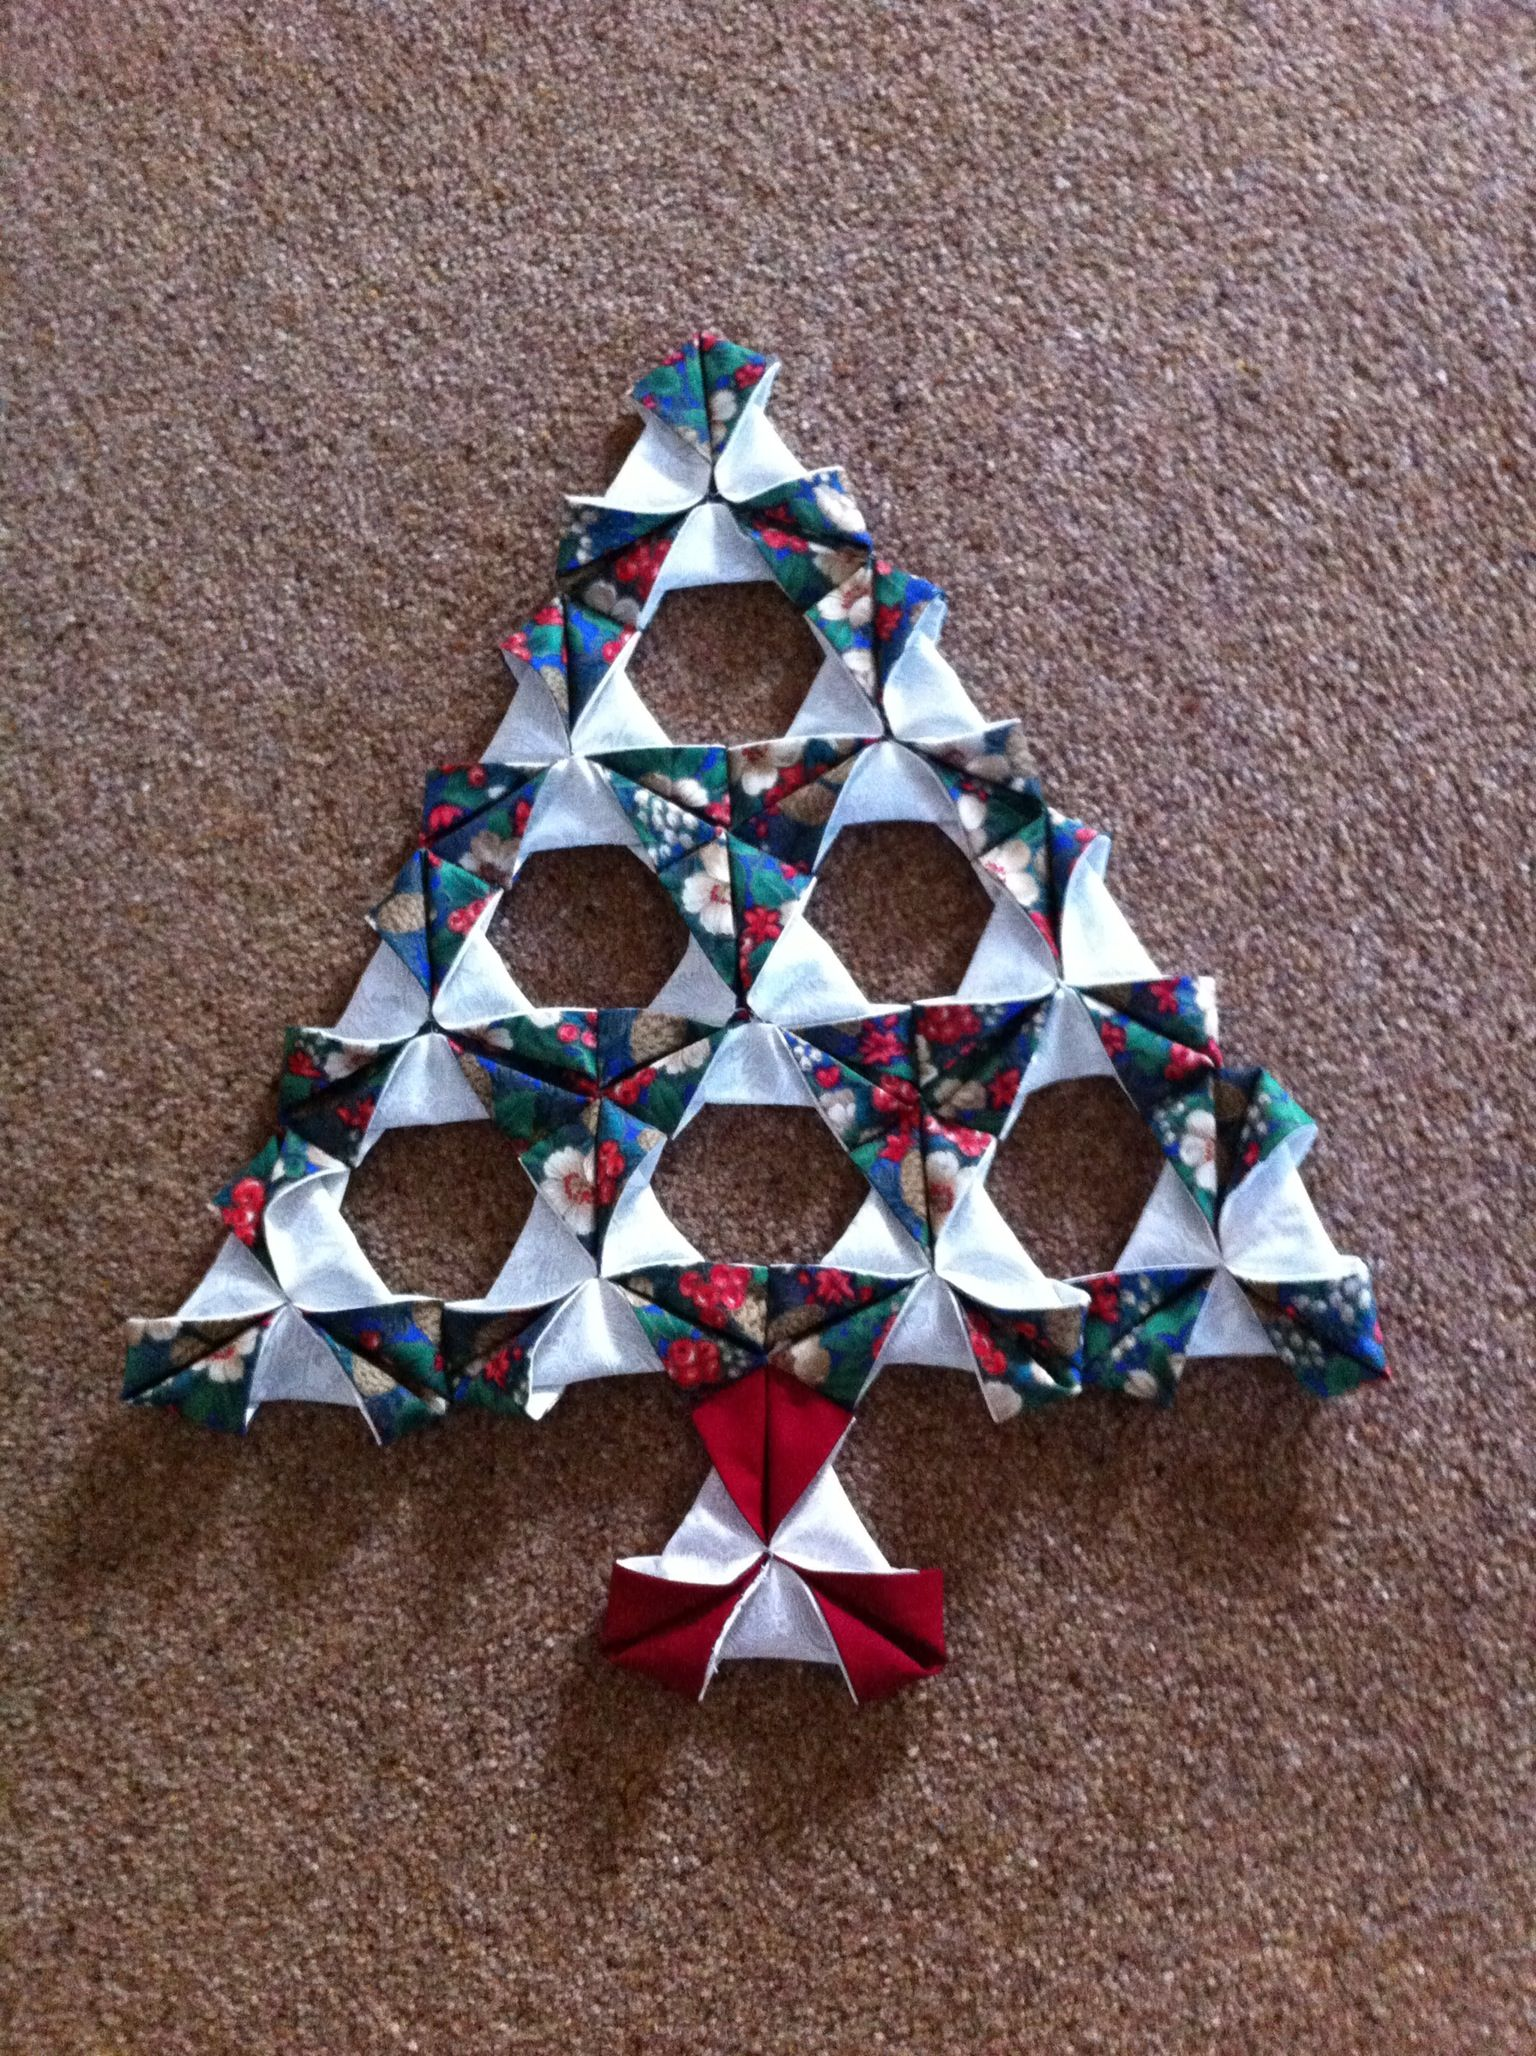 Christmas Tree Made Using Folded Patchwork Another Item From Sew Me Something Fabric Christmas Ornaments Fabric Christmas Trees Origami Christmas Ornament